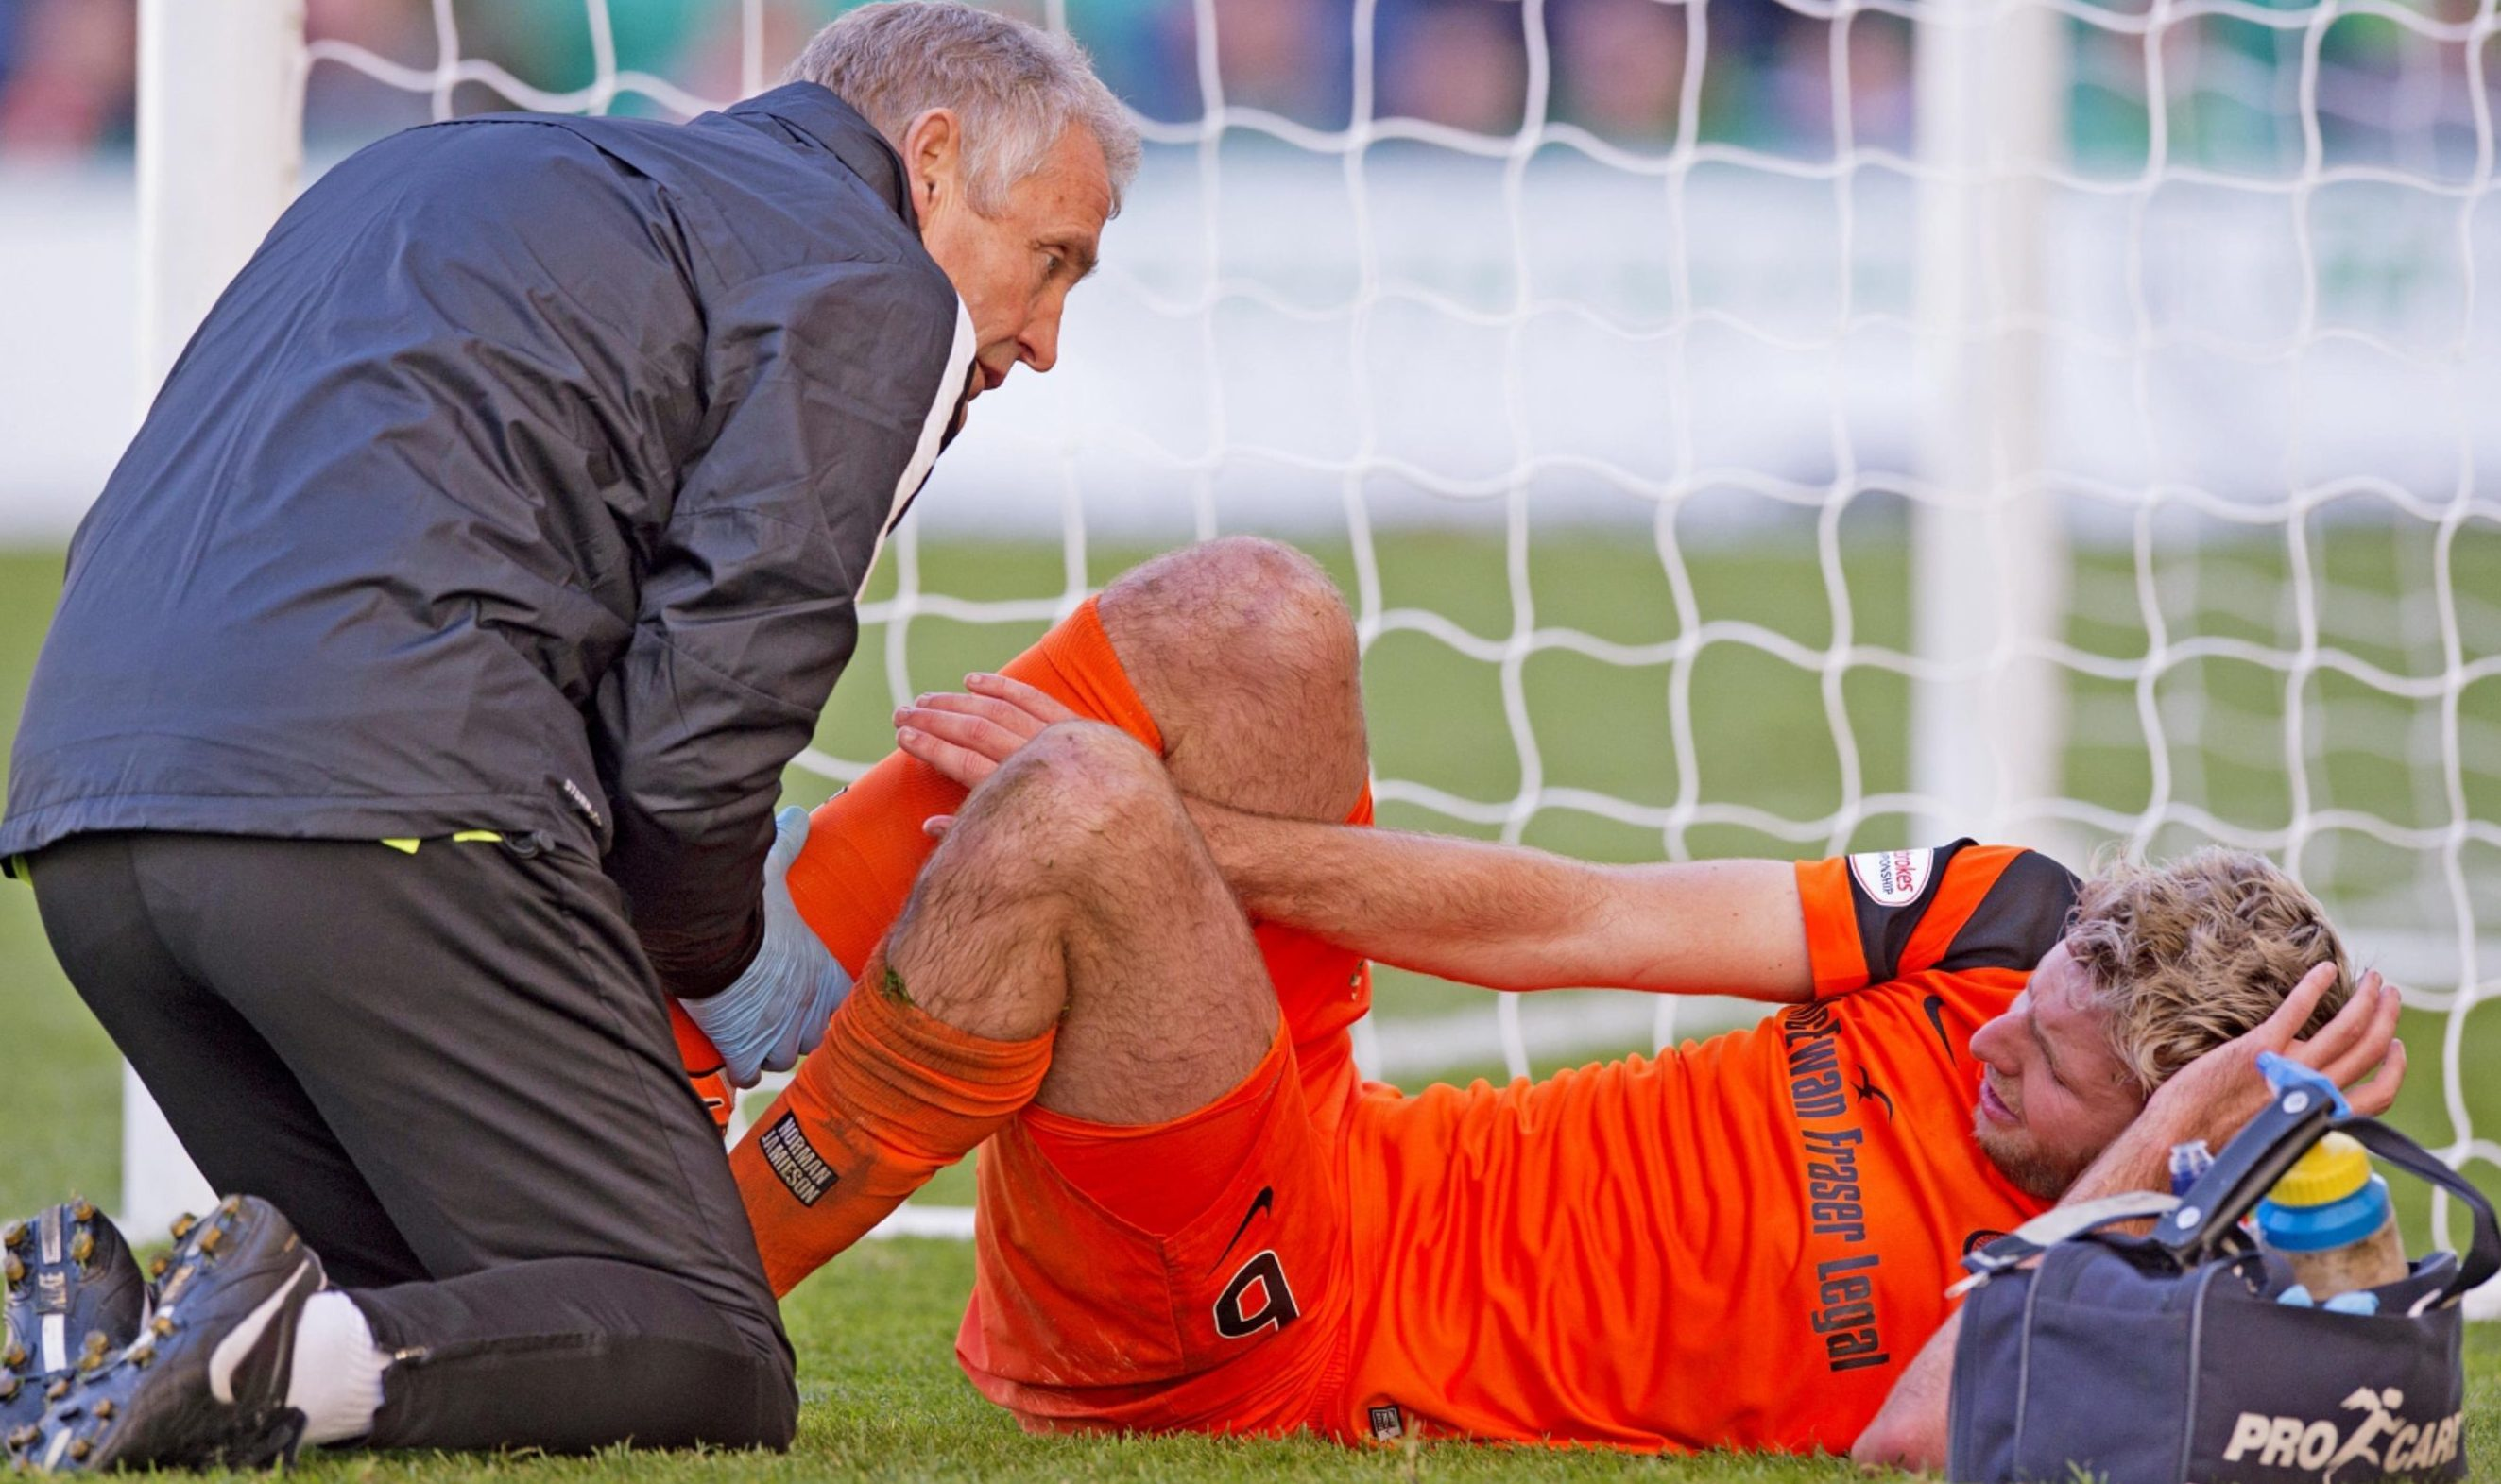 Lewis Toshney gets treatment for ankle injury during Hibs game.